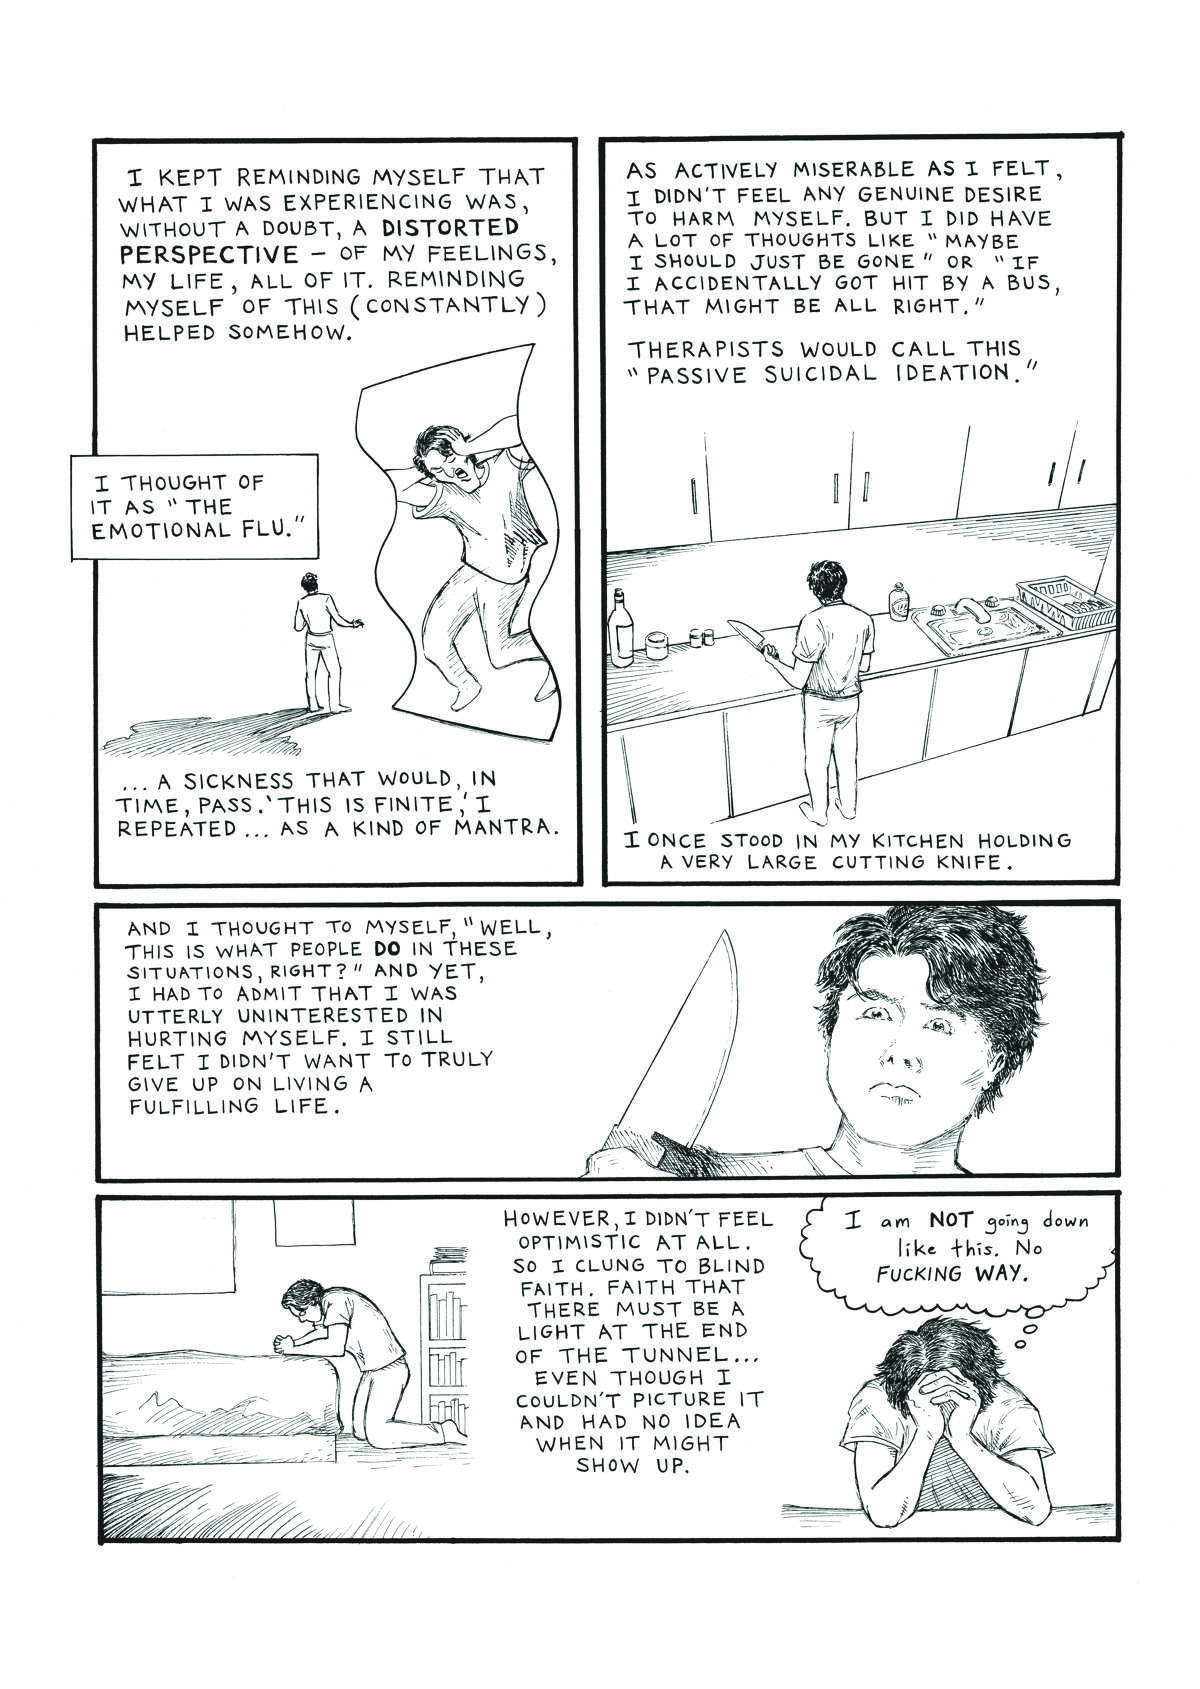 Tony Wolf Depression Comic p4 (1)